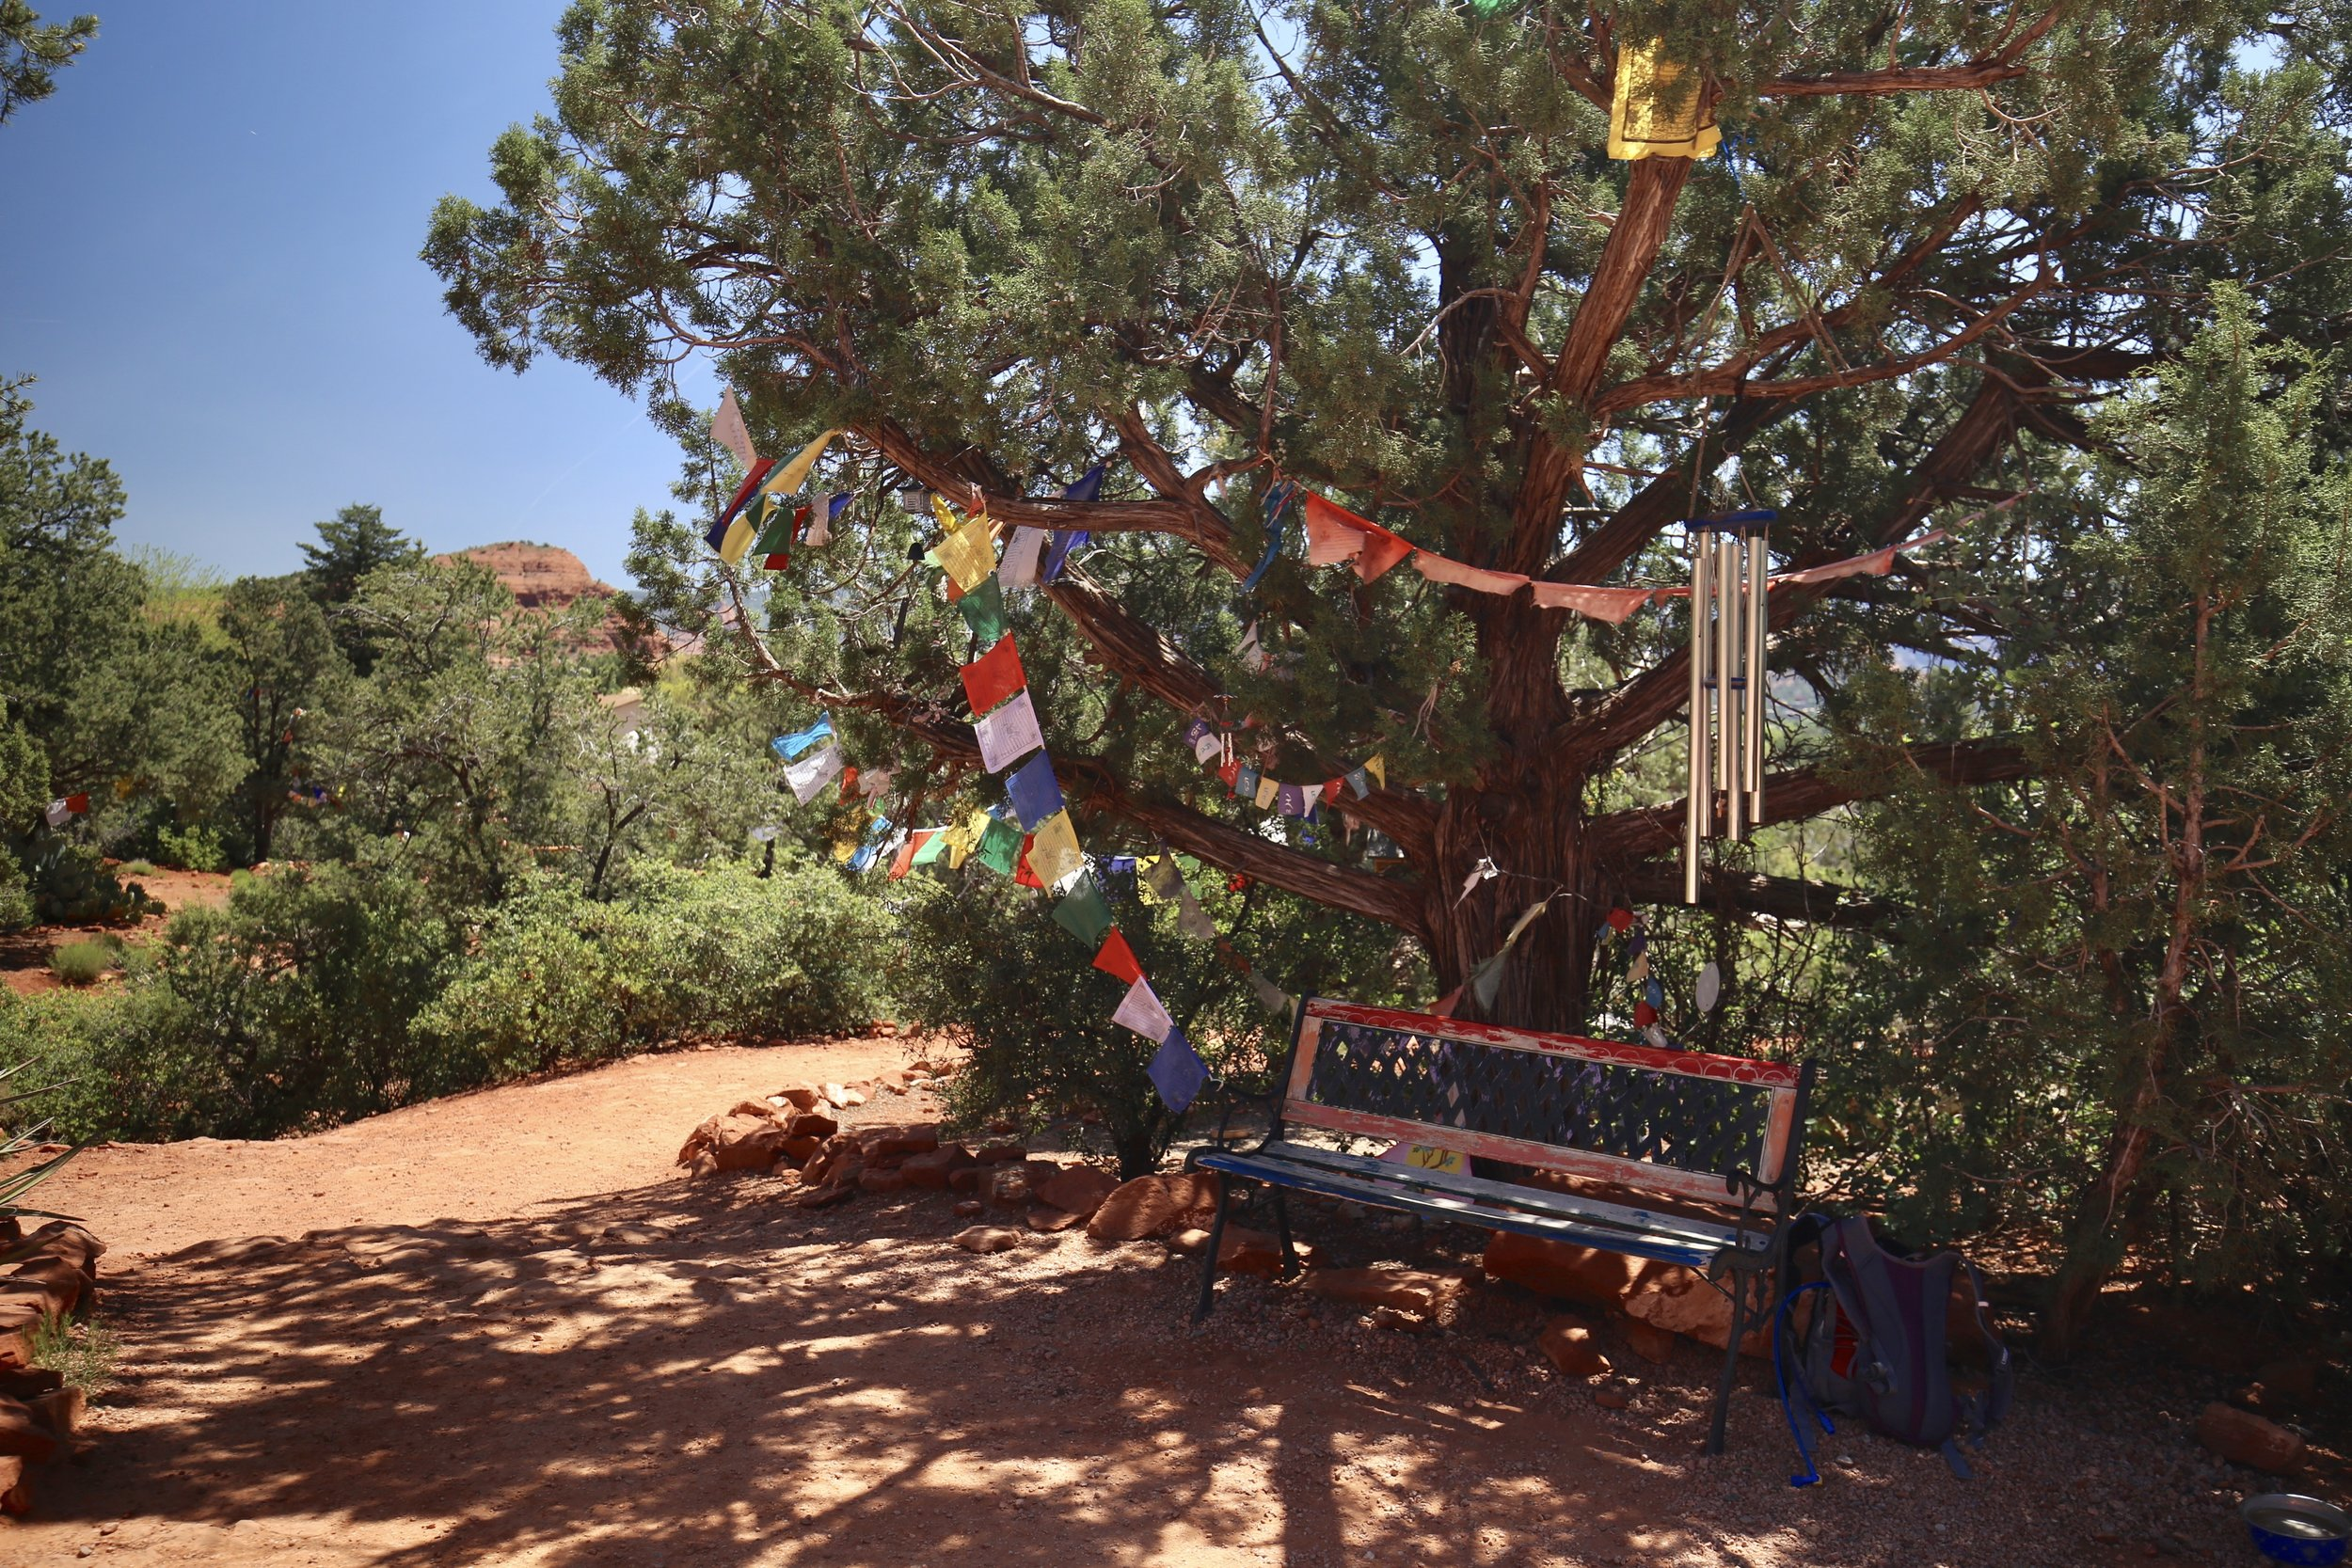 A seat and prayer flags in the gardens of the peace stupa, Sedona.